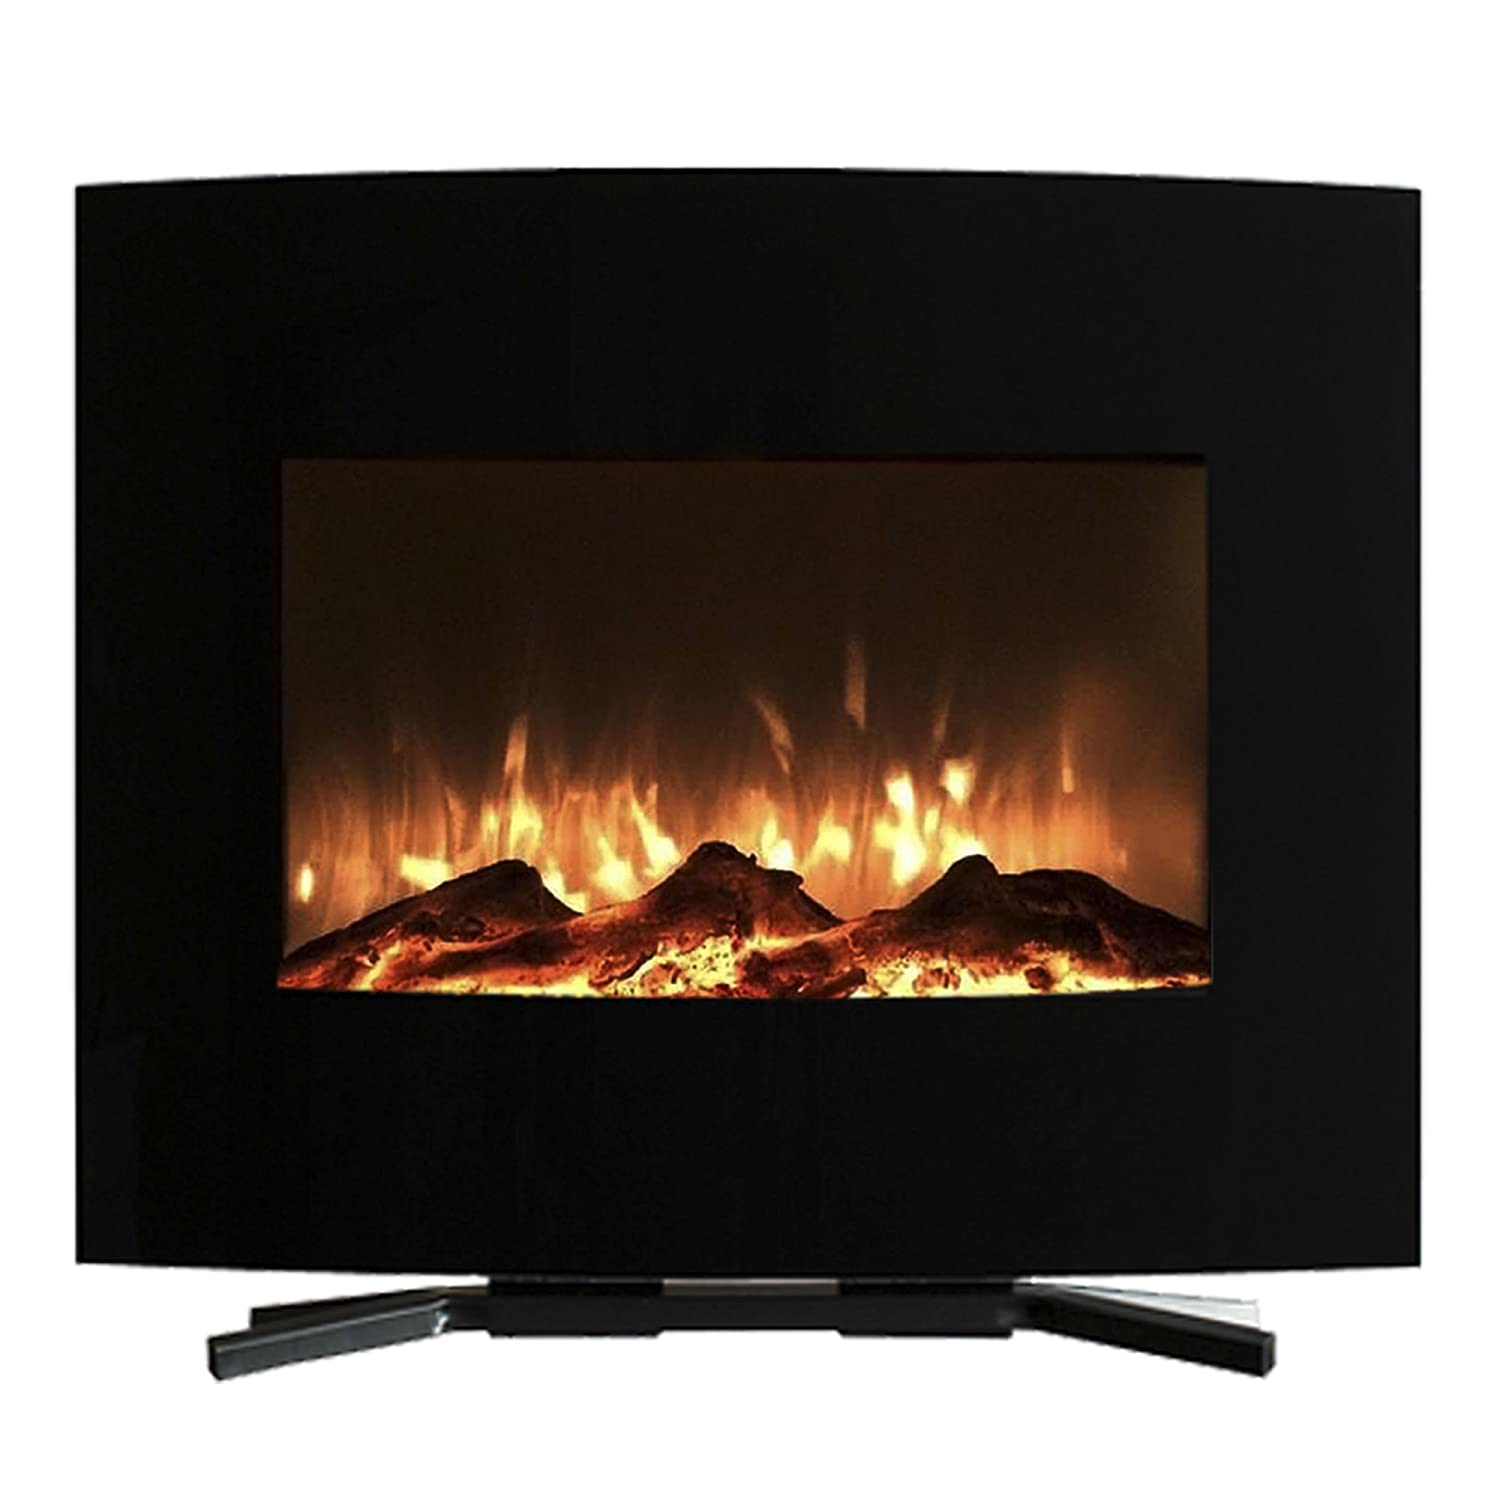 with Remote Black 42 Northwest Electric Fireplace Wall Mounted LED Fire and Ice Flame